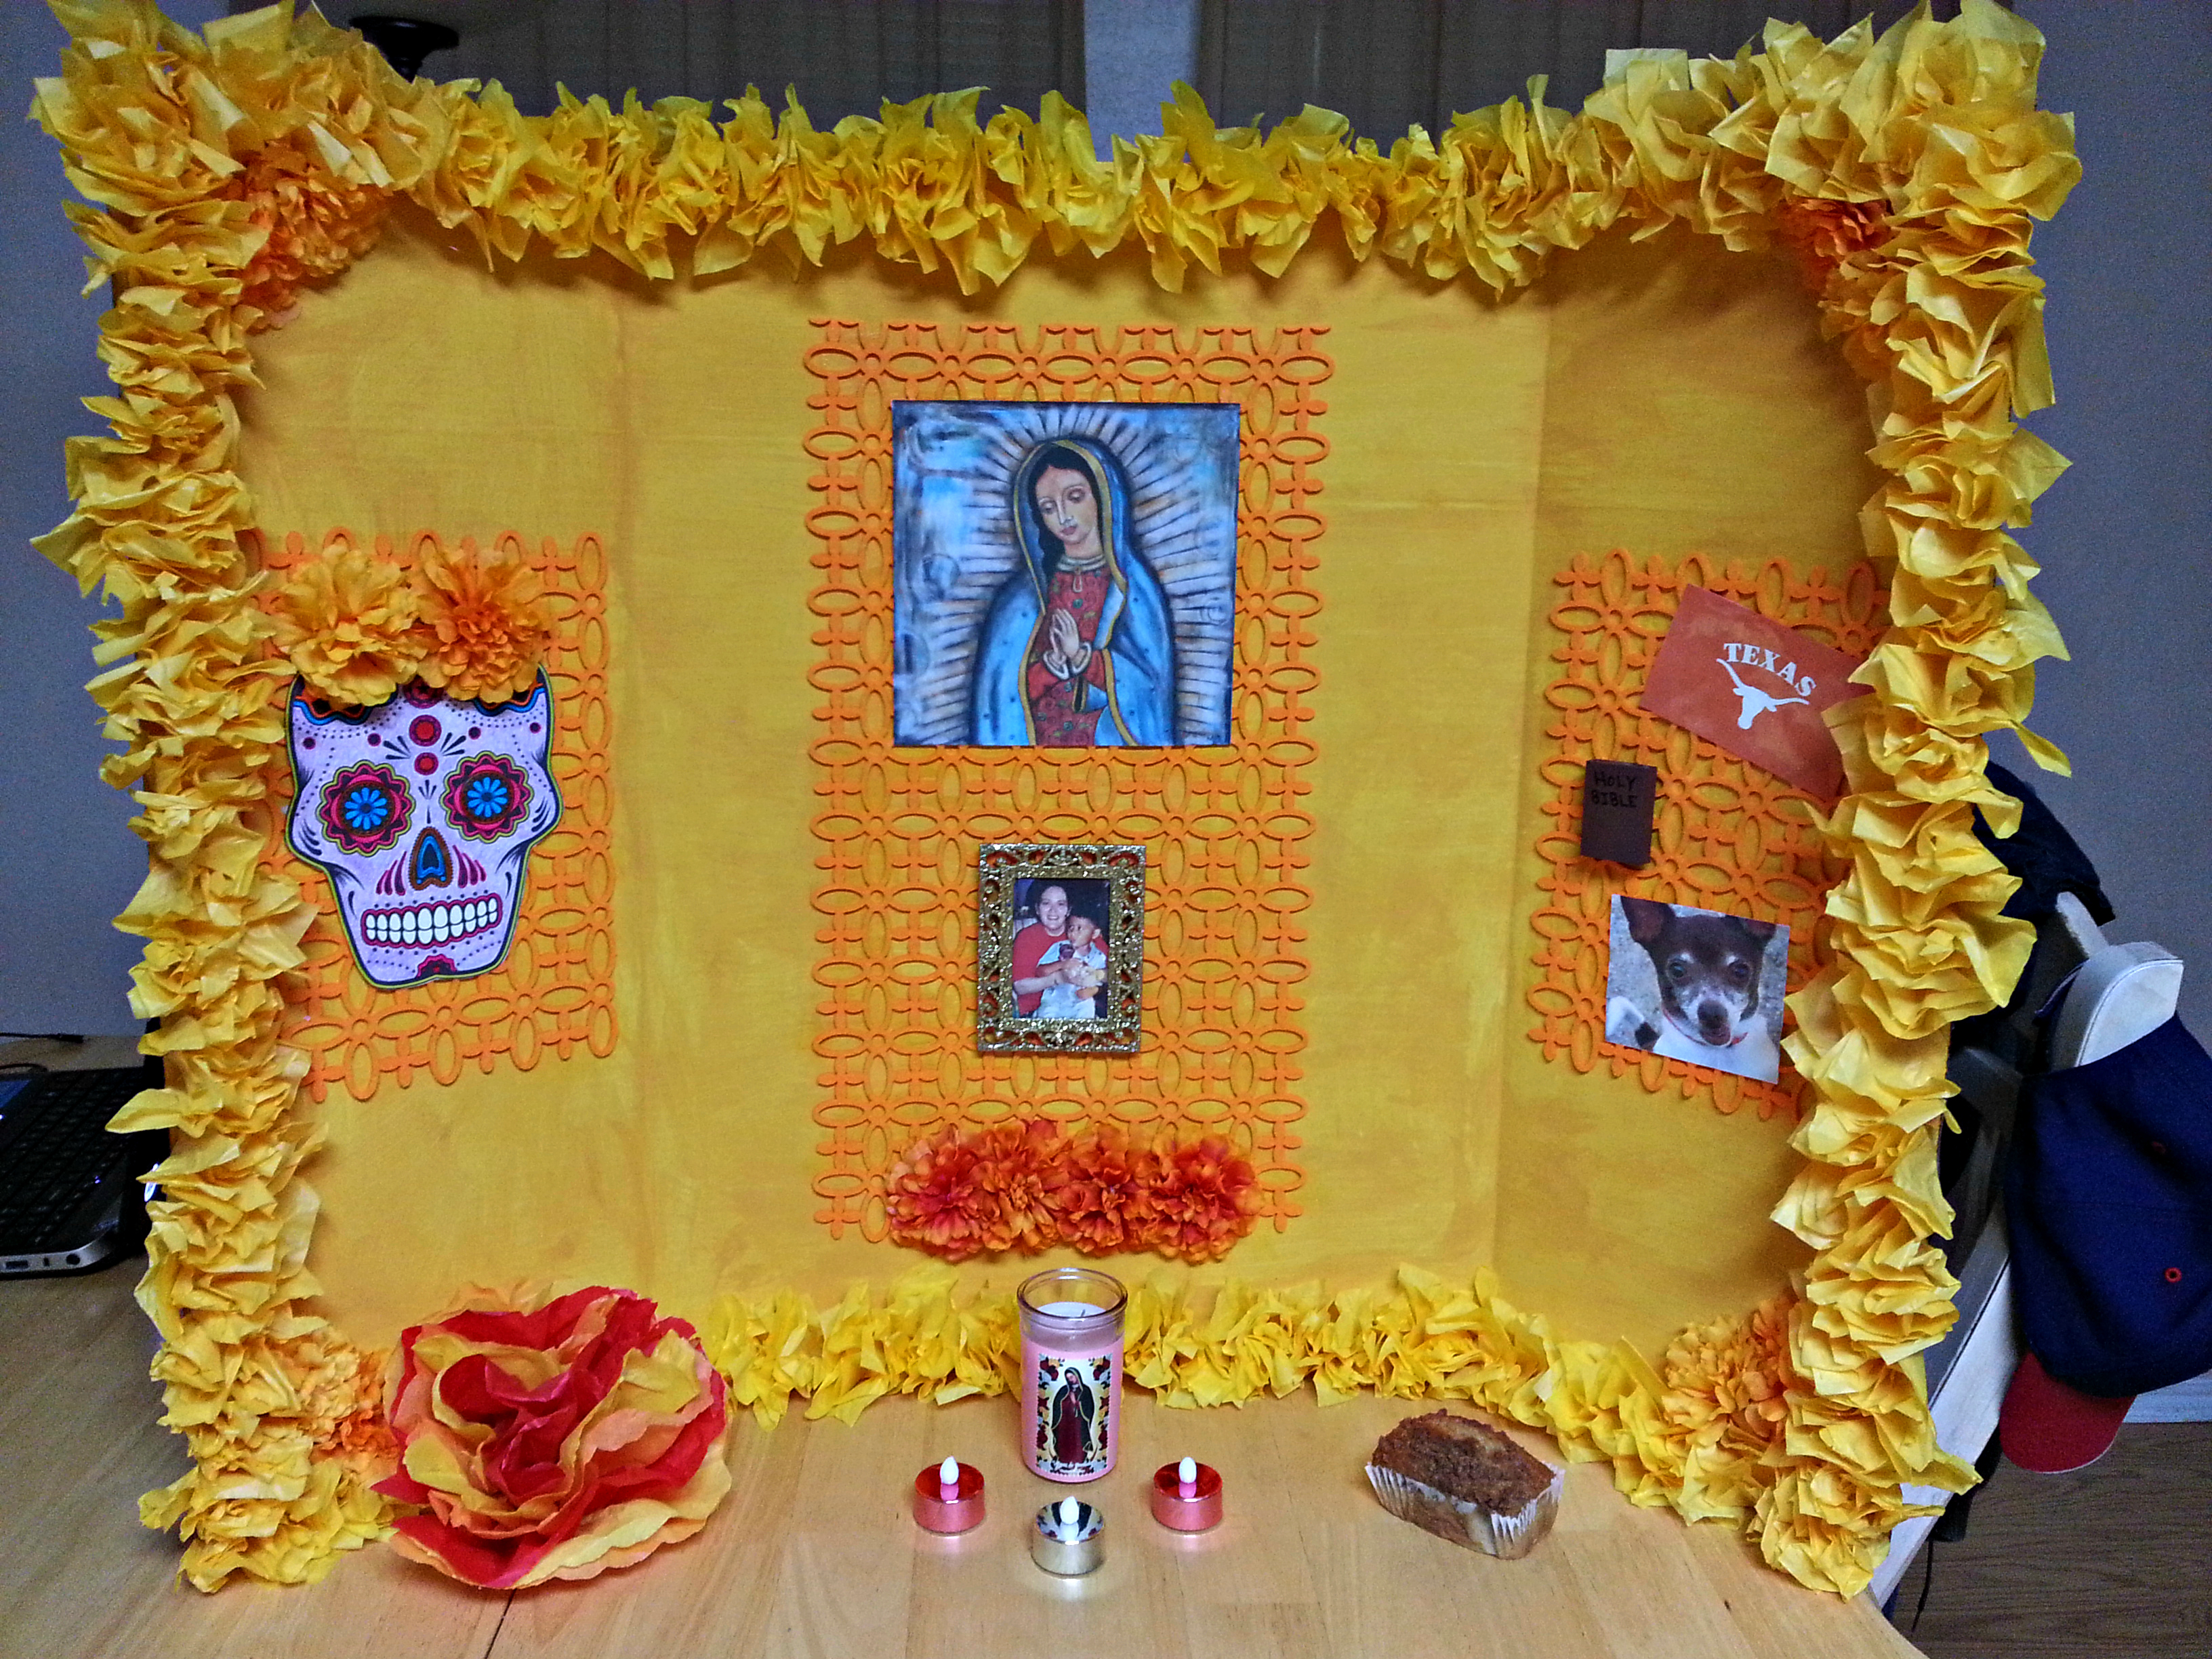 A simple homemade halloween costume and a dia de los muertos altar celebrate day of the dead is a great site to read more about the holiday for specific information on altars look at the left side of the website menu and mightylinksfo